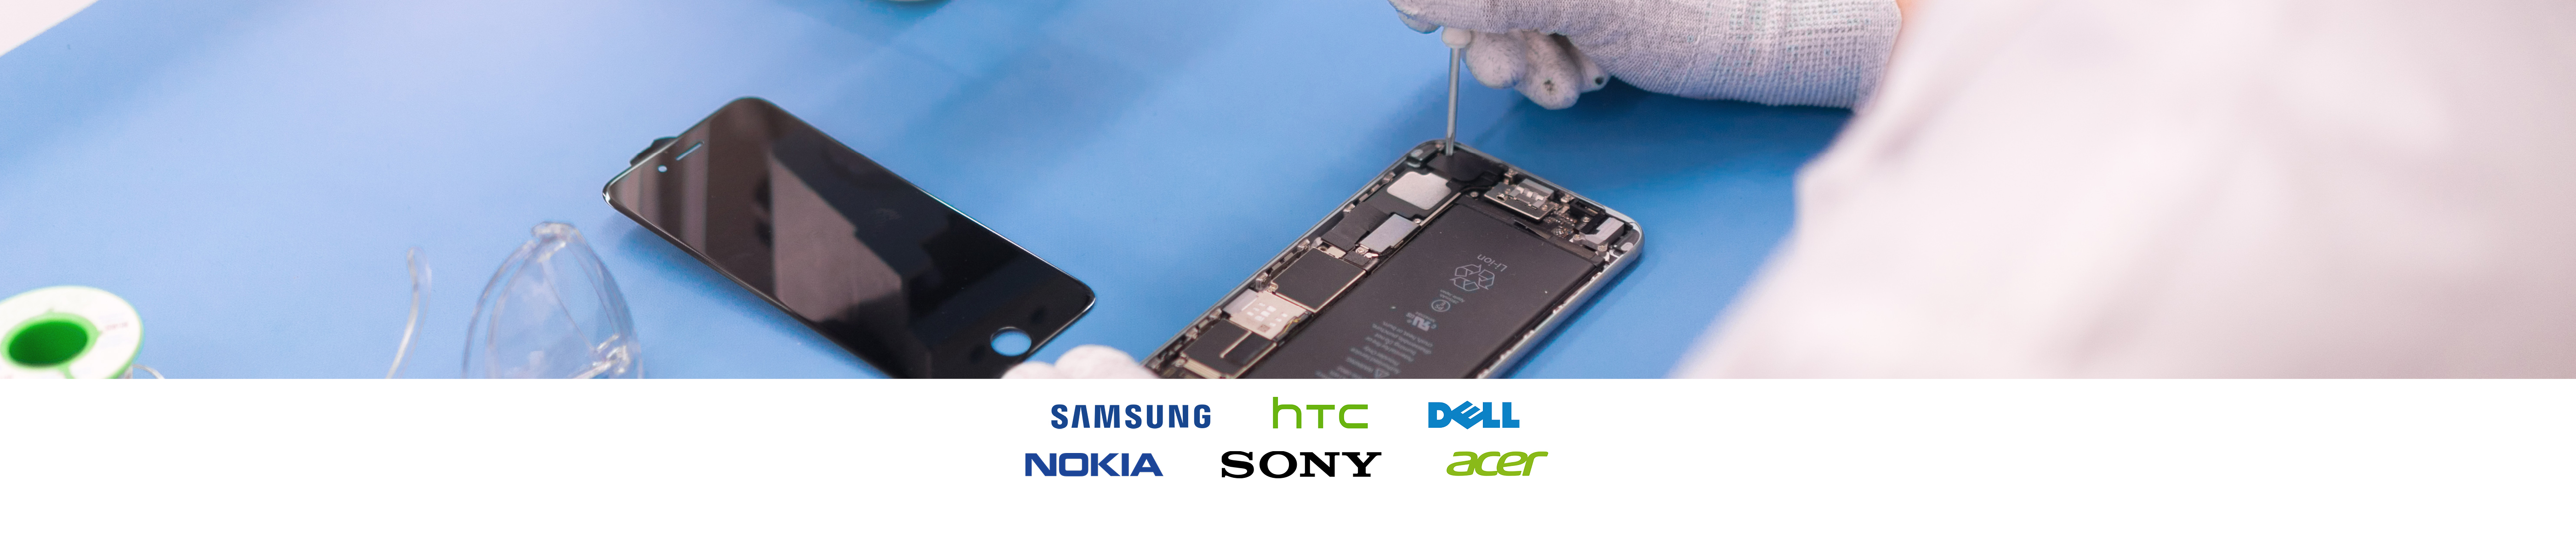 repair-options-banners-v2-smartphone-tablet